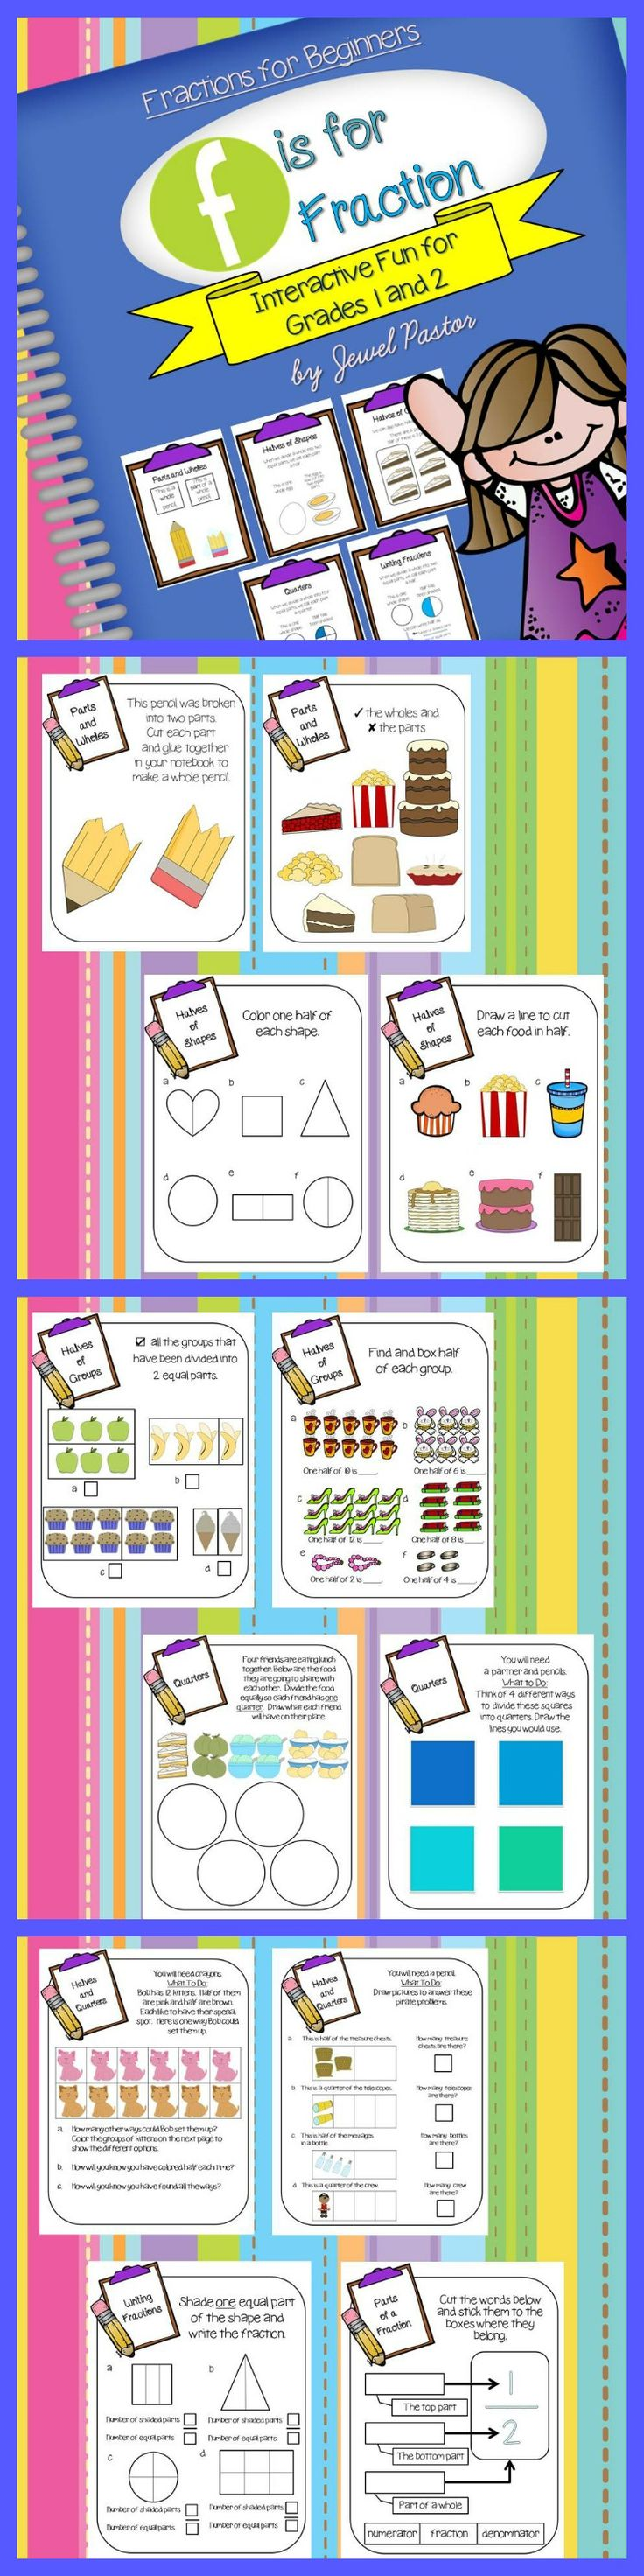 Pin On Educational Ideas And Activities For Pre 6th Grades [ 2944 x 736 Pixel ]